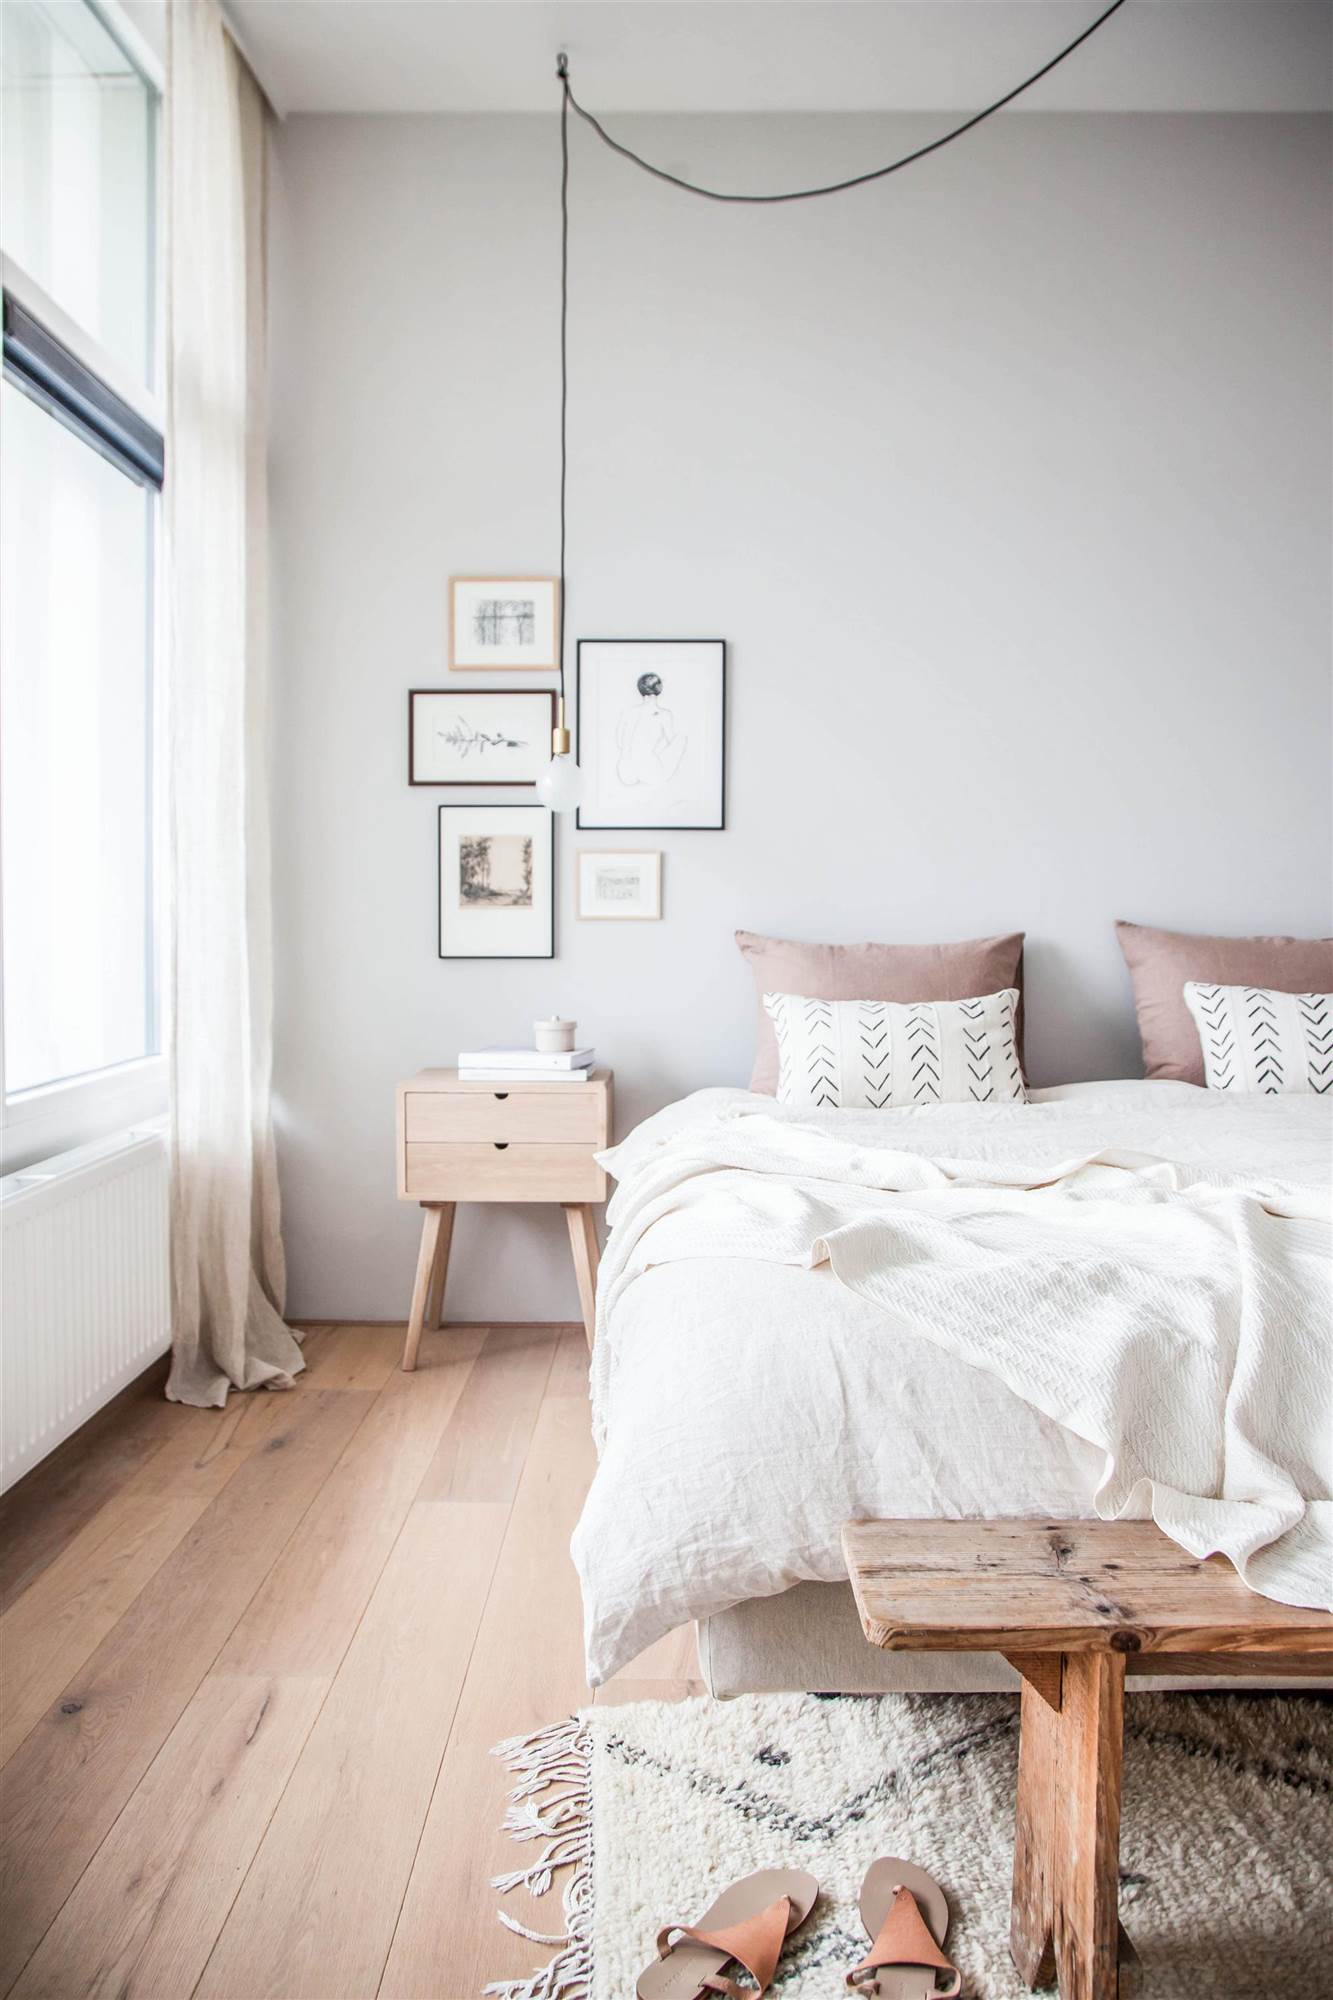 Dormitorio con pared gris claro